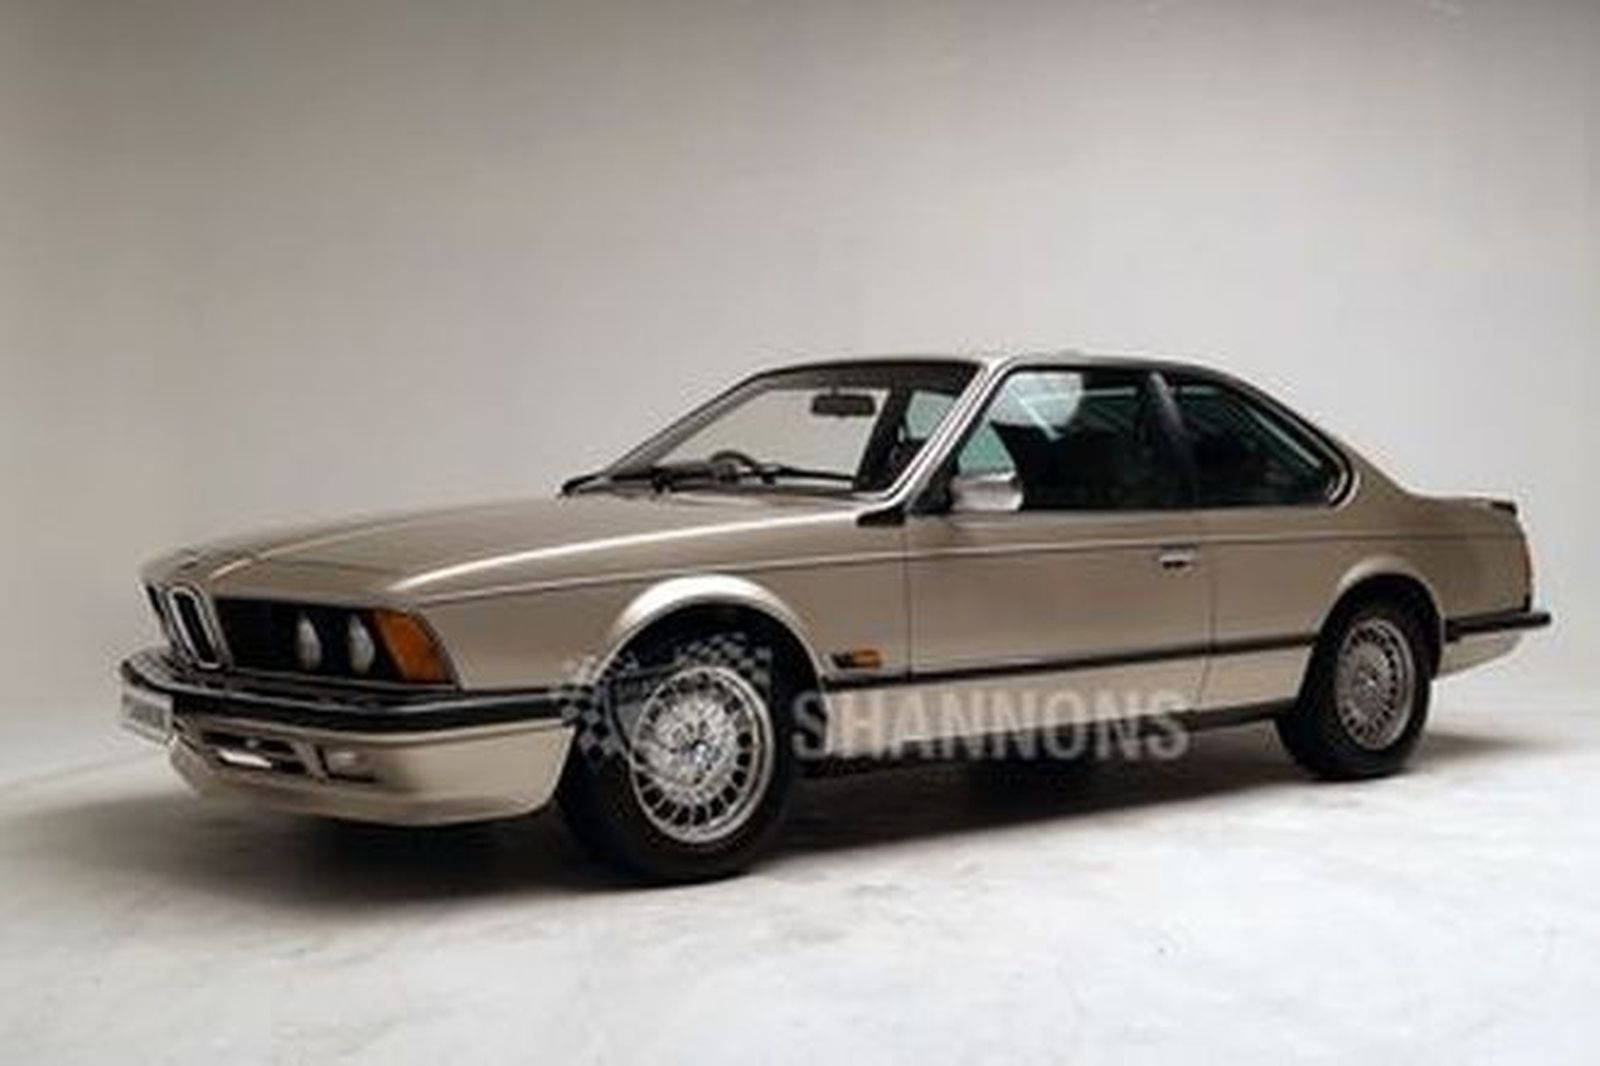 Sold Bmw 635 Csi Coupe Auctions Lot 35 Shannons